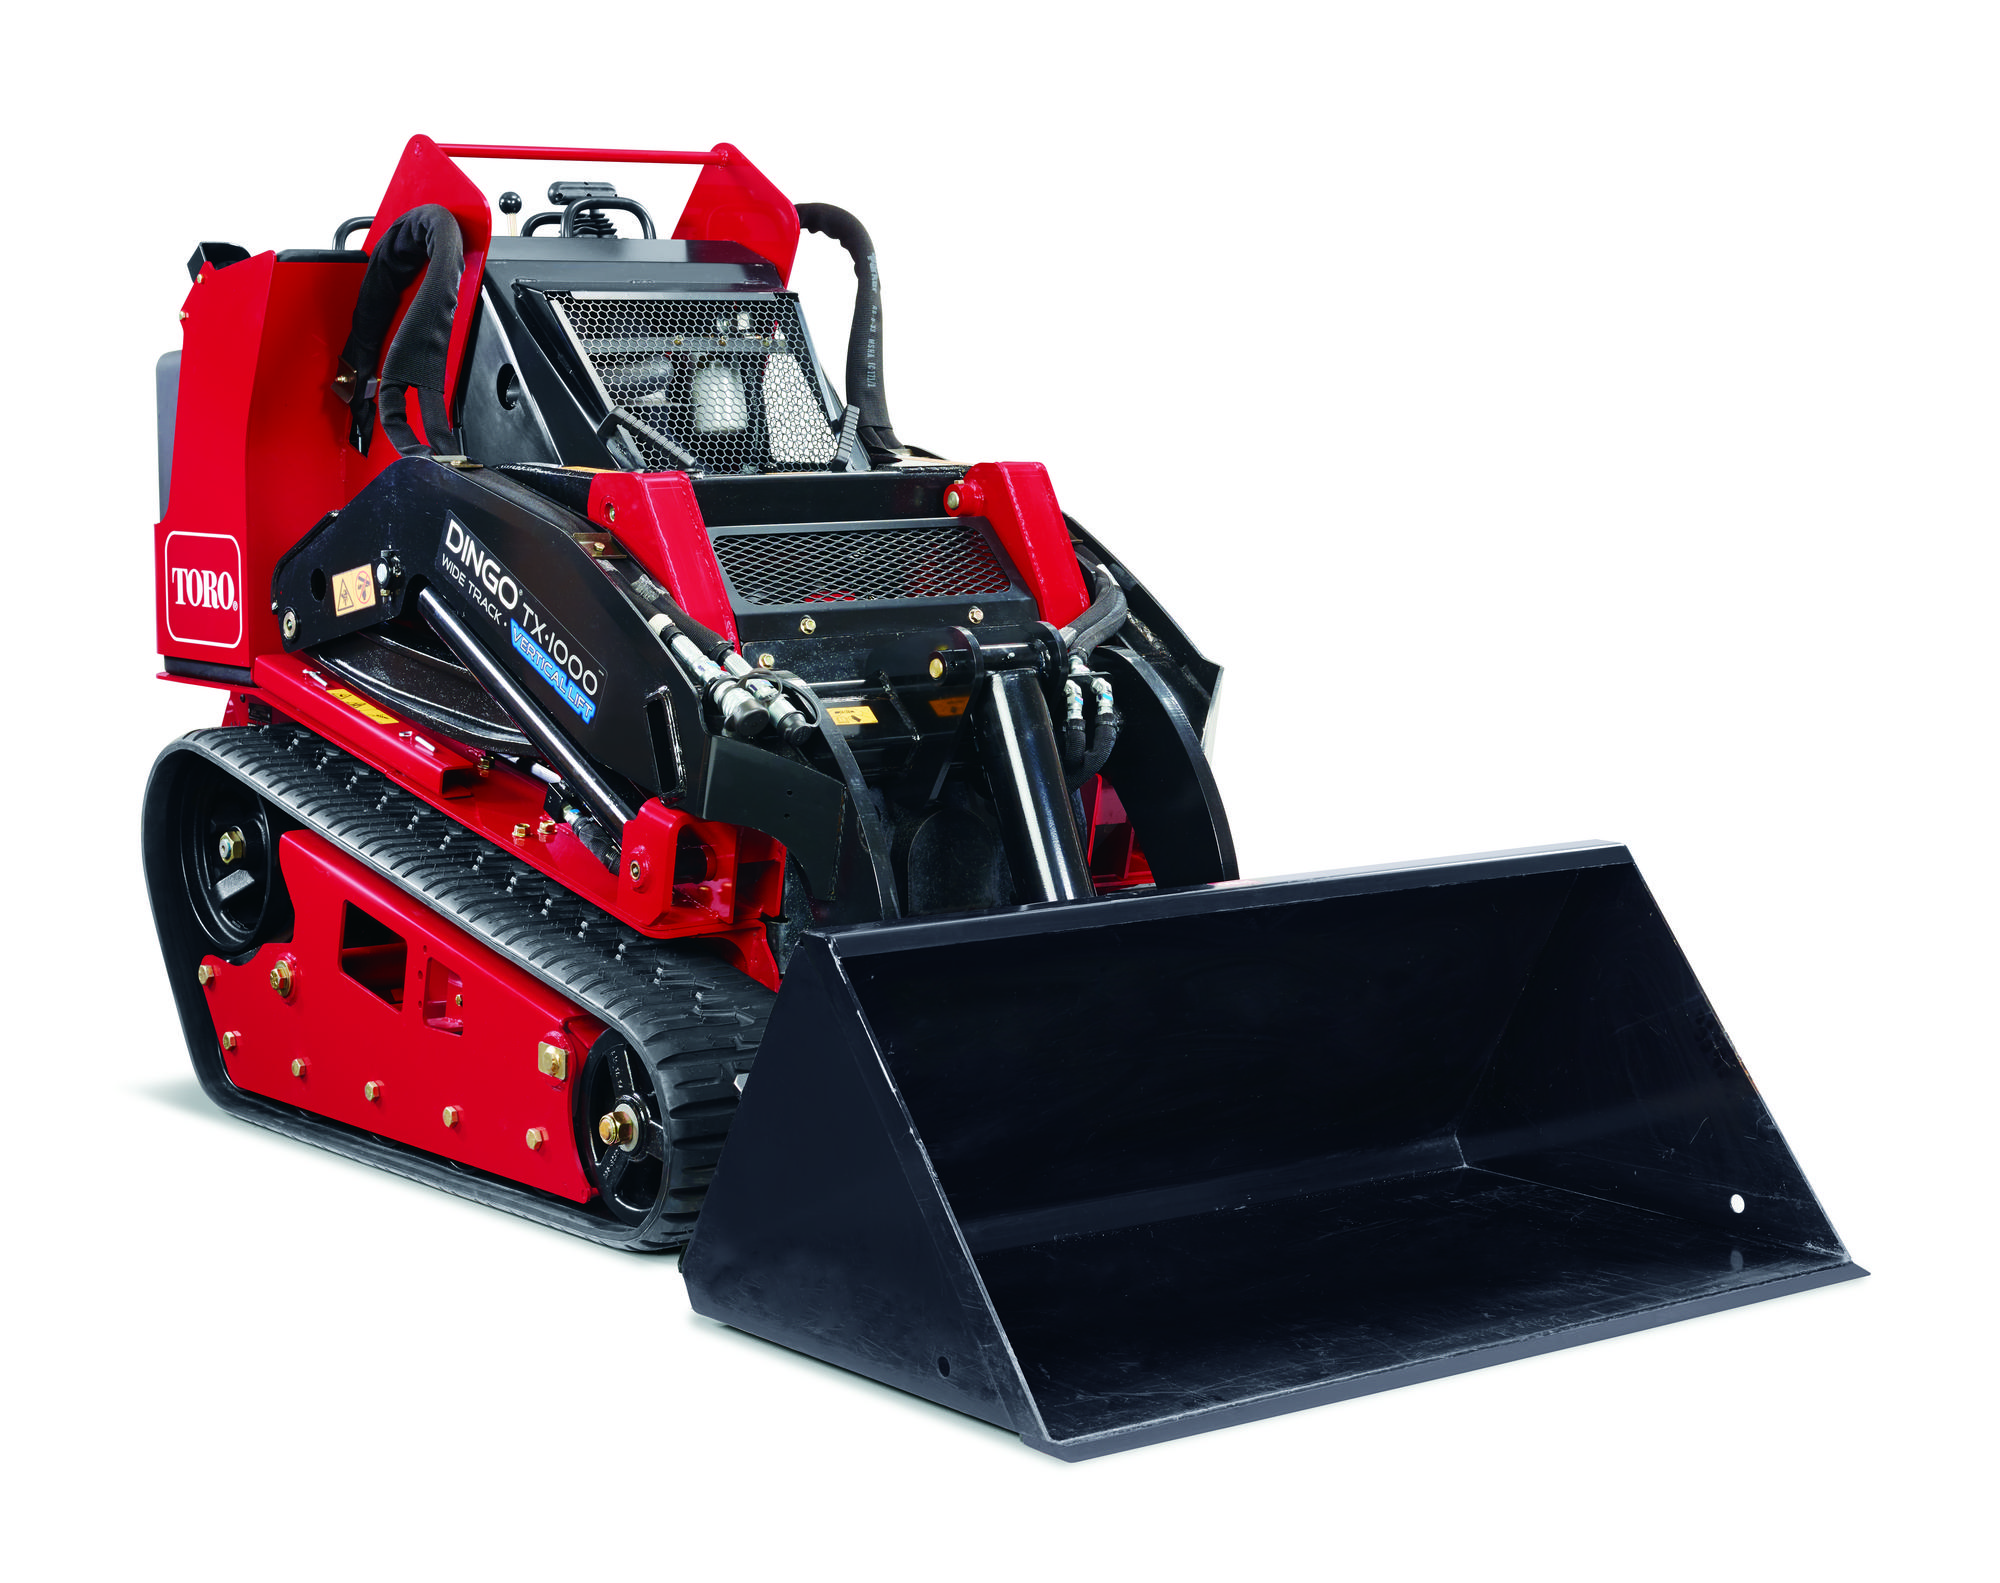 Toro 22328 TX1000 Wide Track Compact Utility Loader